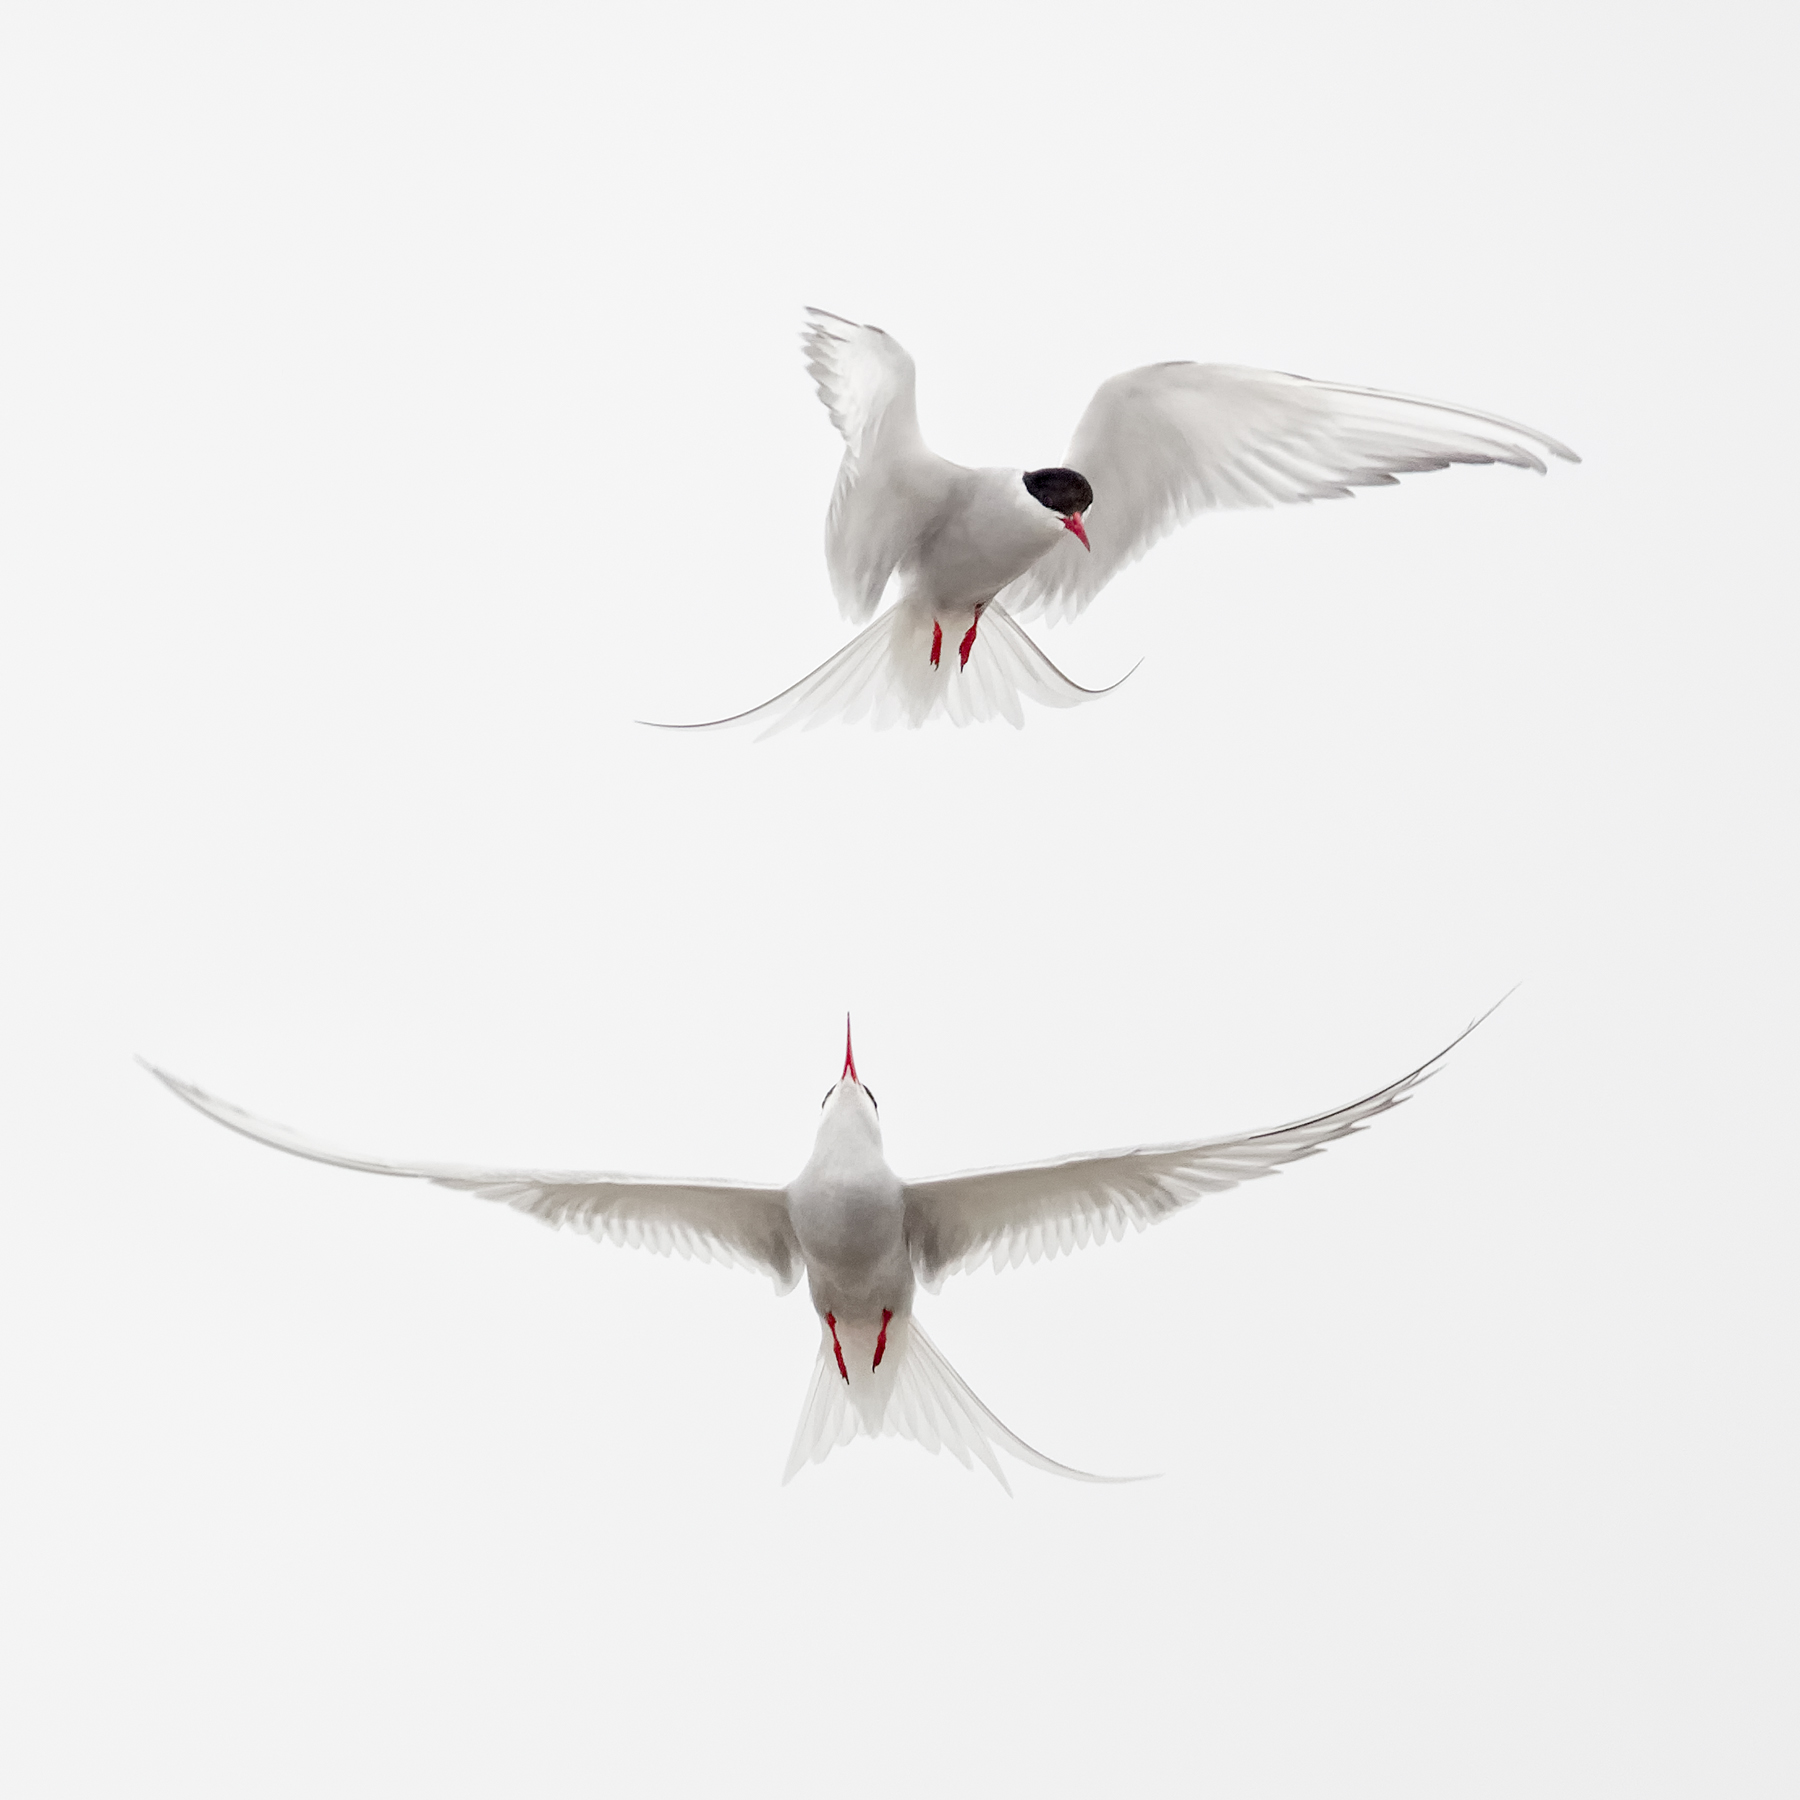 Brian_Jones_Arctic Terns Courtship Flight_Arctic Terns Courtship Flight 5_4.jpg